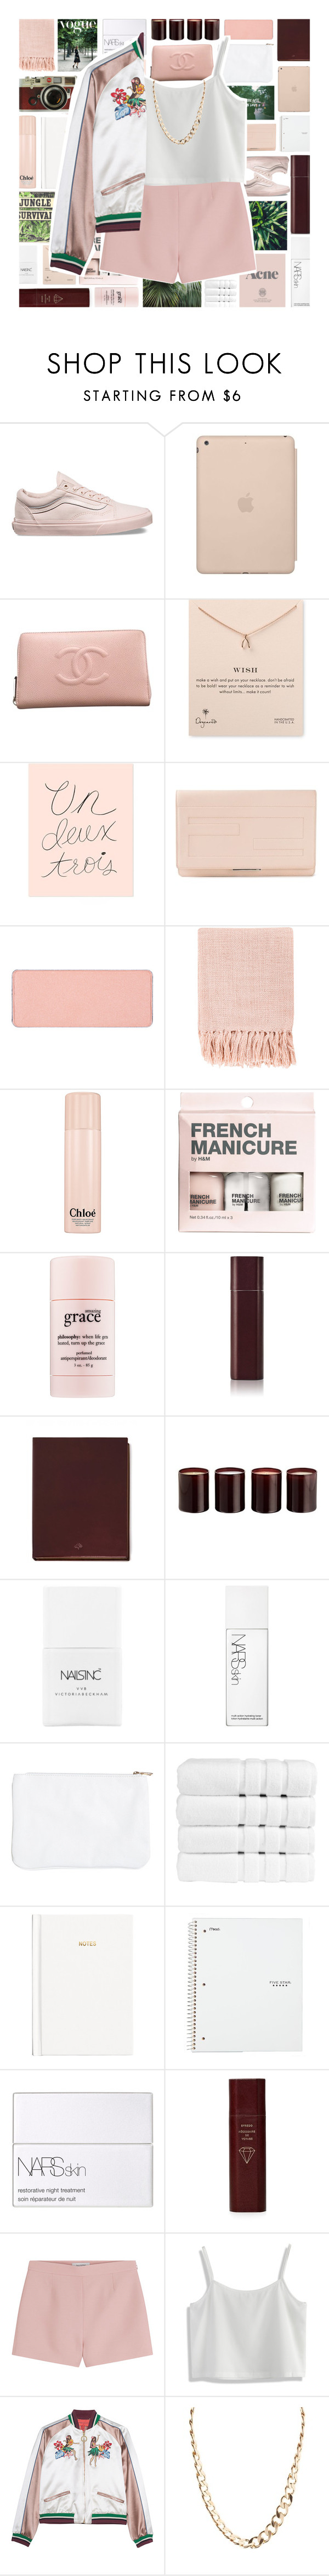 """""""Bomber Jacket"""" by xgracieeee ❤ liked on Polyvore featuring Vans, Black Apple, Chanel, Dogeared, Rifle Paper Co, Fendi, shu uemura, Surya, Prada and Chloé"""